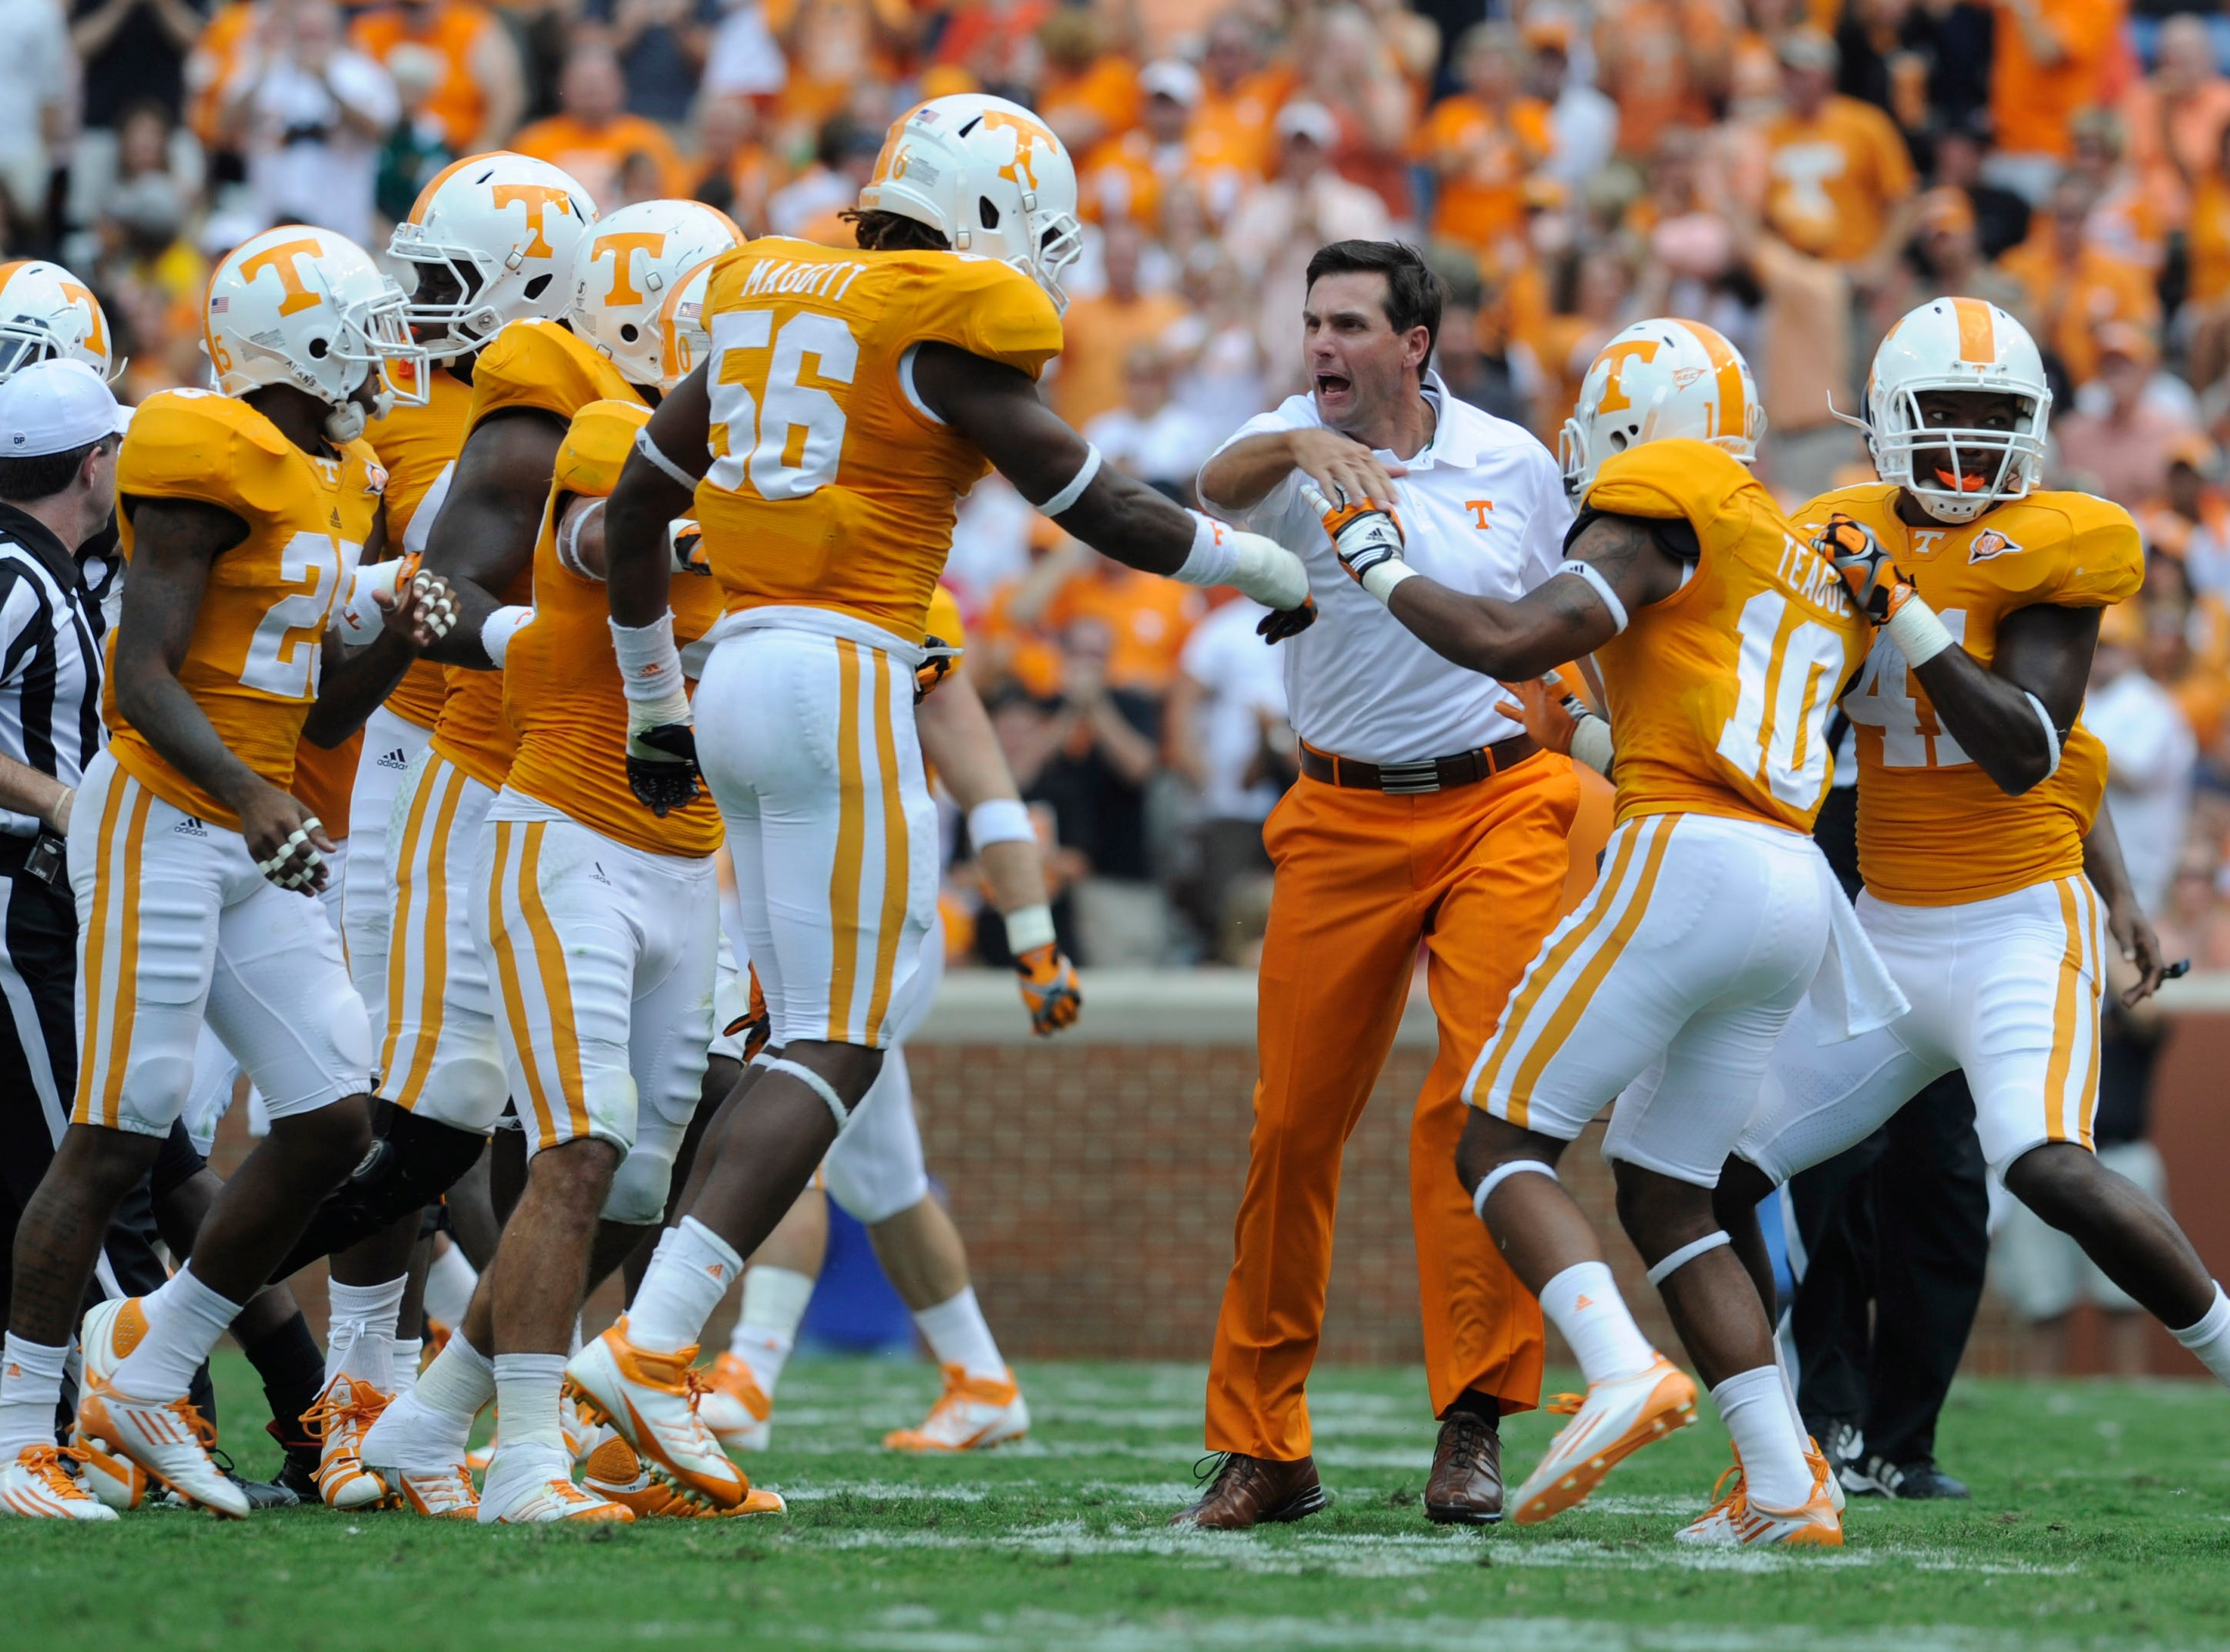 Tennessee head coach Derek Dooley celebrates with the team after they held Cincinnati on a fourth down at Neyland Stadium Saturday, Sept. 10, 2011.